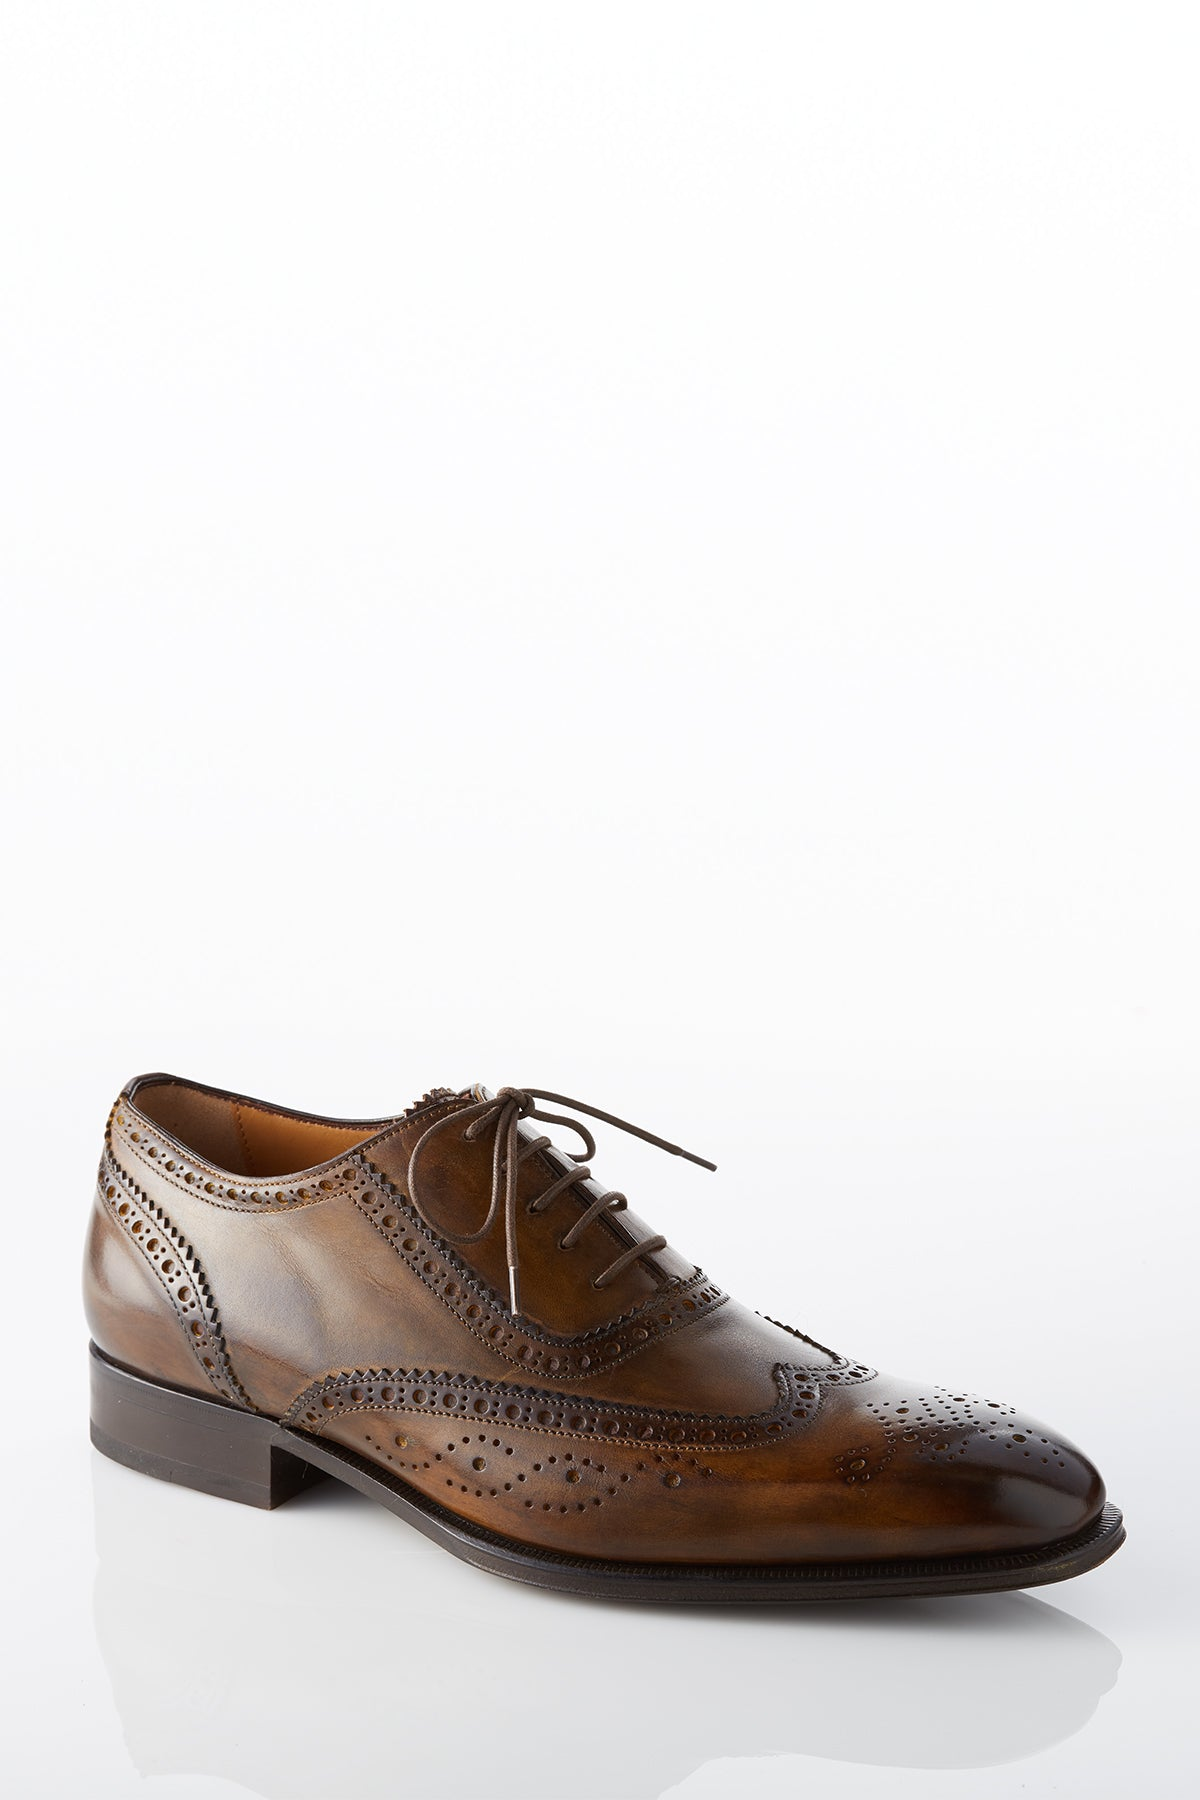 David August Leather Wingtip Brogue Shoes in Light Brown Di Bianco